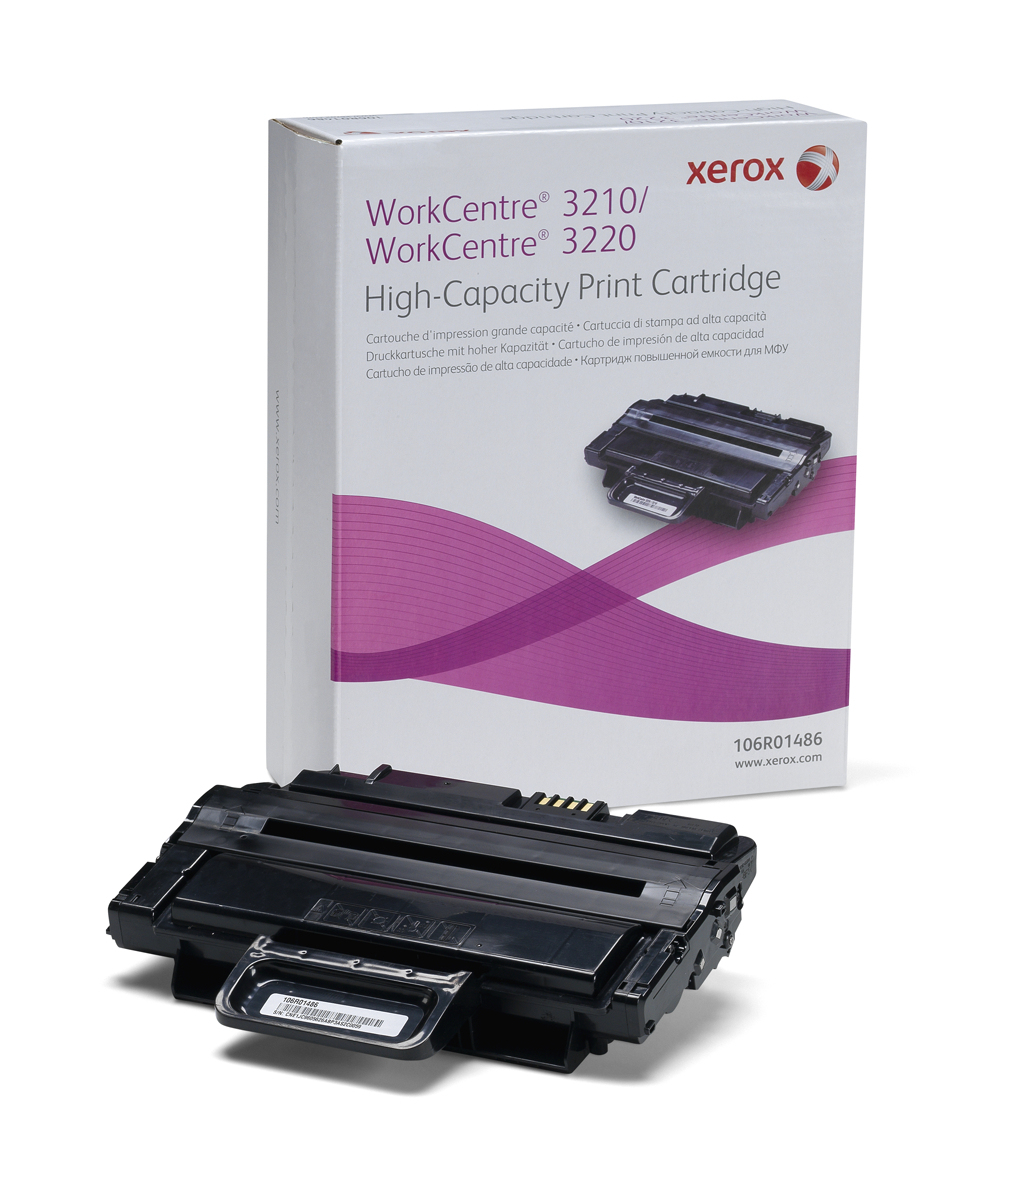 Xer106r01486   Xerox Wc3210/3200 H.capacity   Xerox Phaser 3210 H/c Print Cartridge 4100 Pages             - UF01